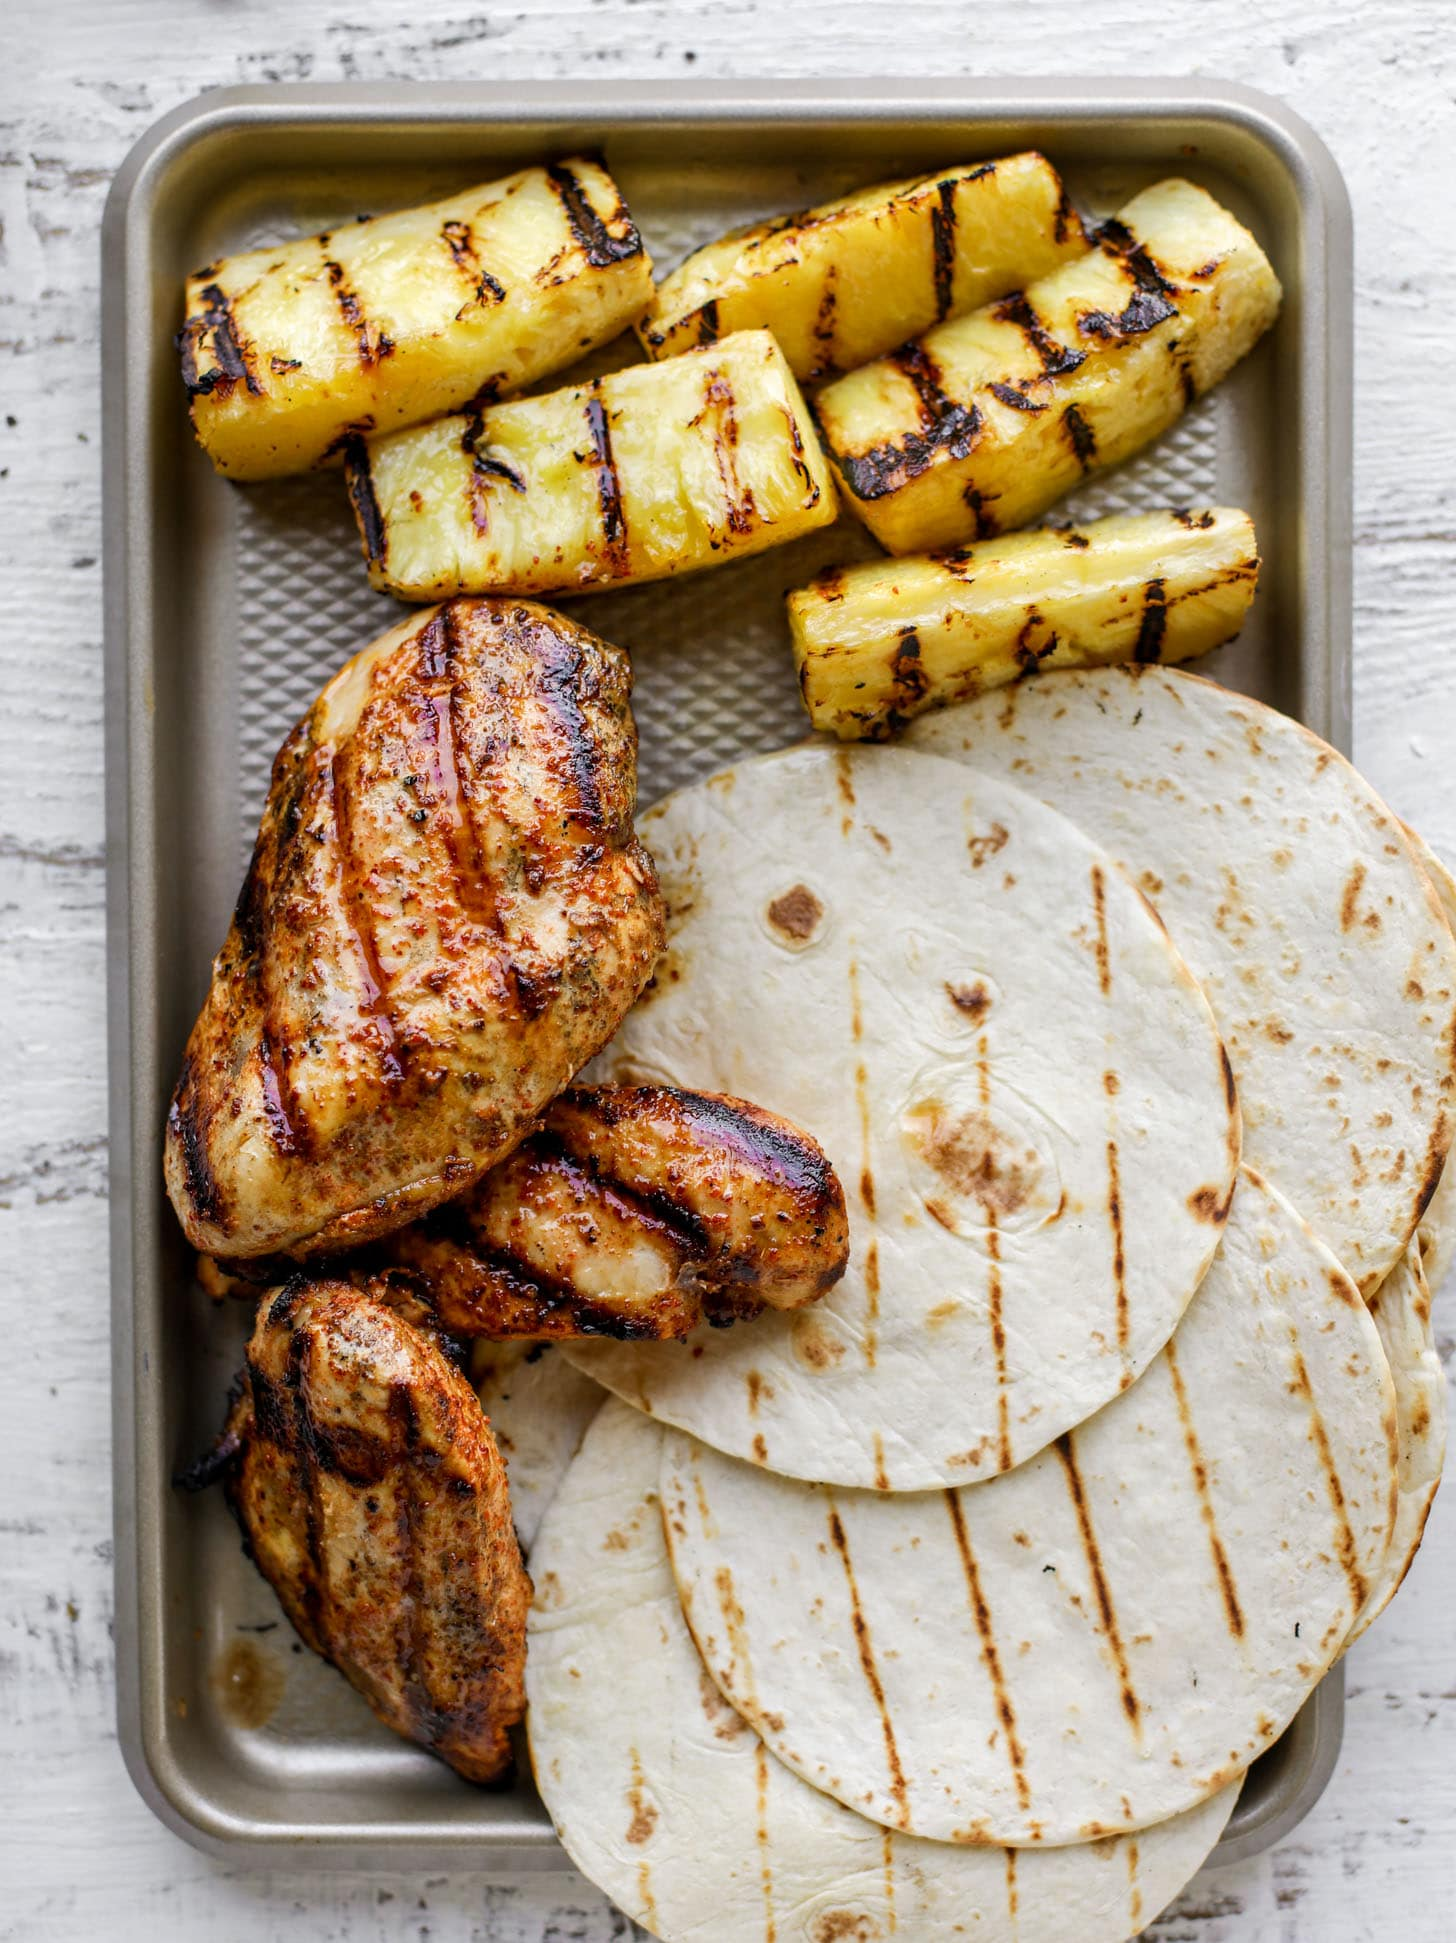 grilled chicken, pineapple and tortillas